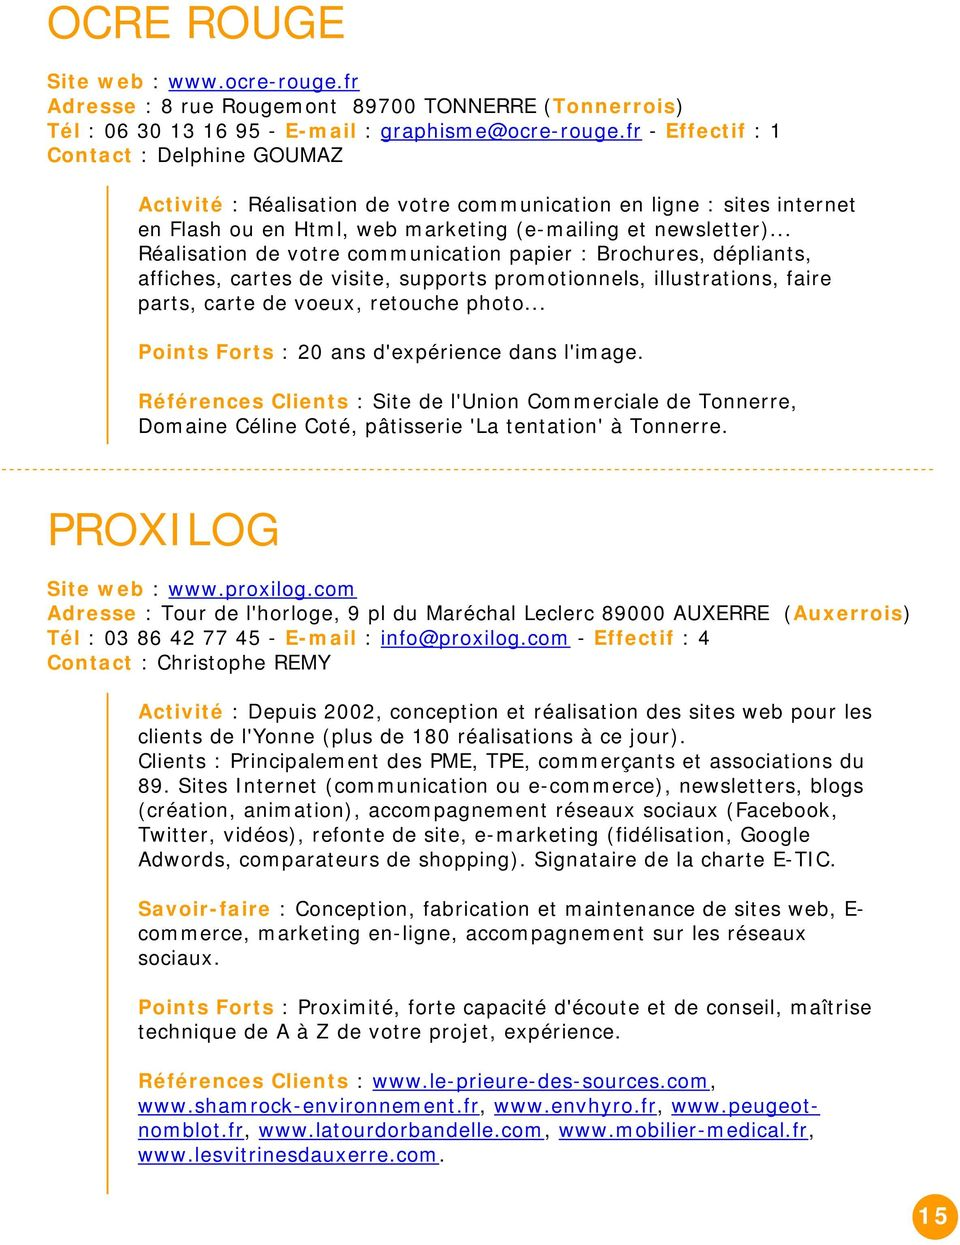 .. Réalisation de votre communication papier : Brochures, dépliants, affiches, cartes de visite, supports promotionnels, illustrations, faire parts, carte de voeux, retouche photo.